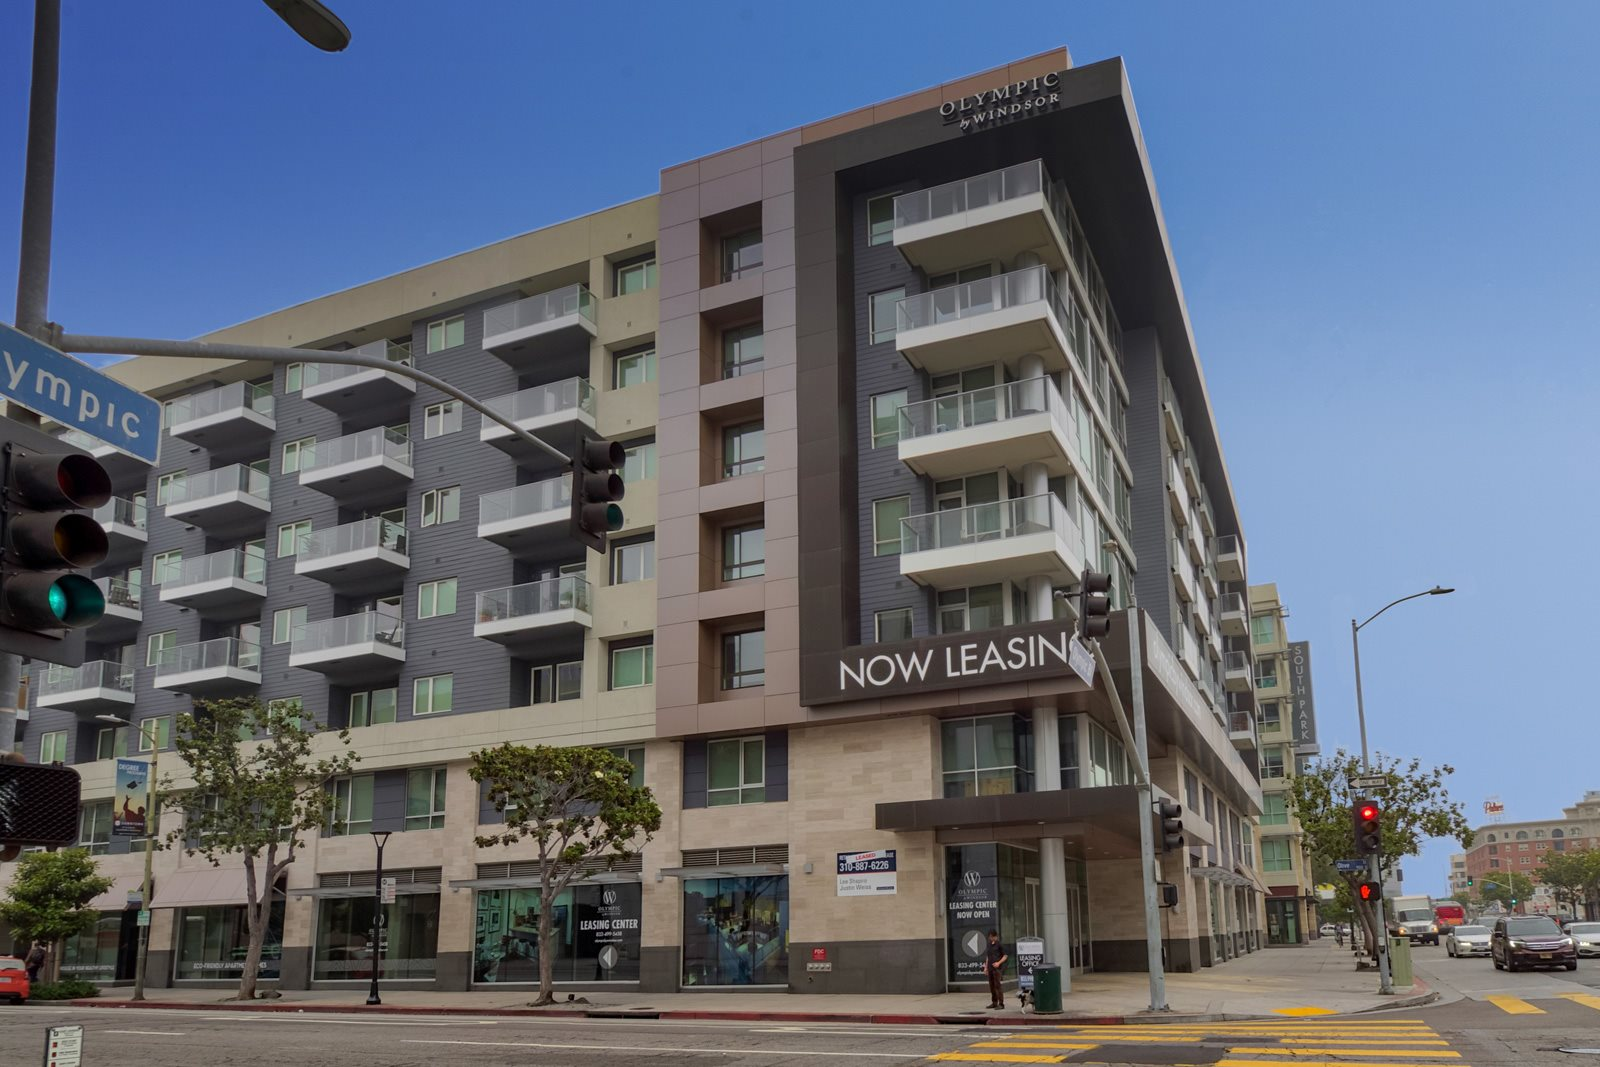 Live in the the Heart of LA at Olympic by Windsor, 936 S. Olive St, Los Angeles